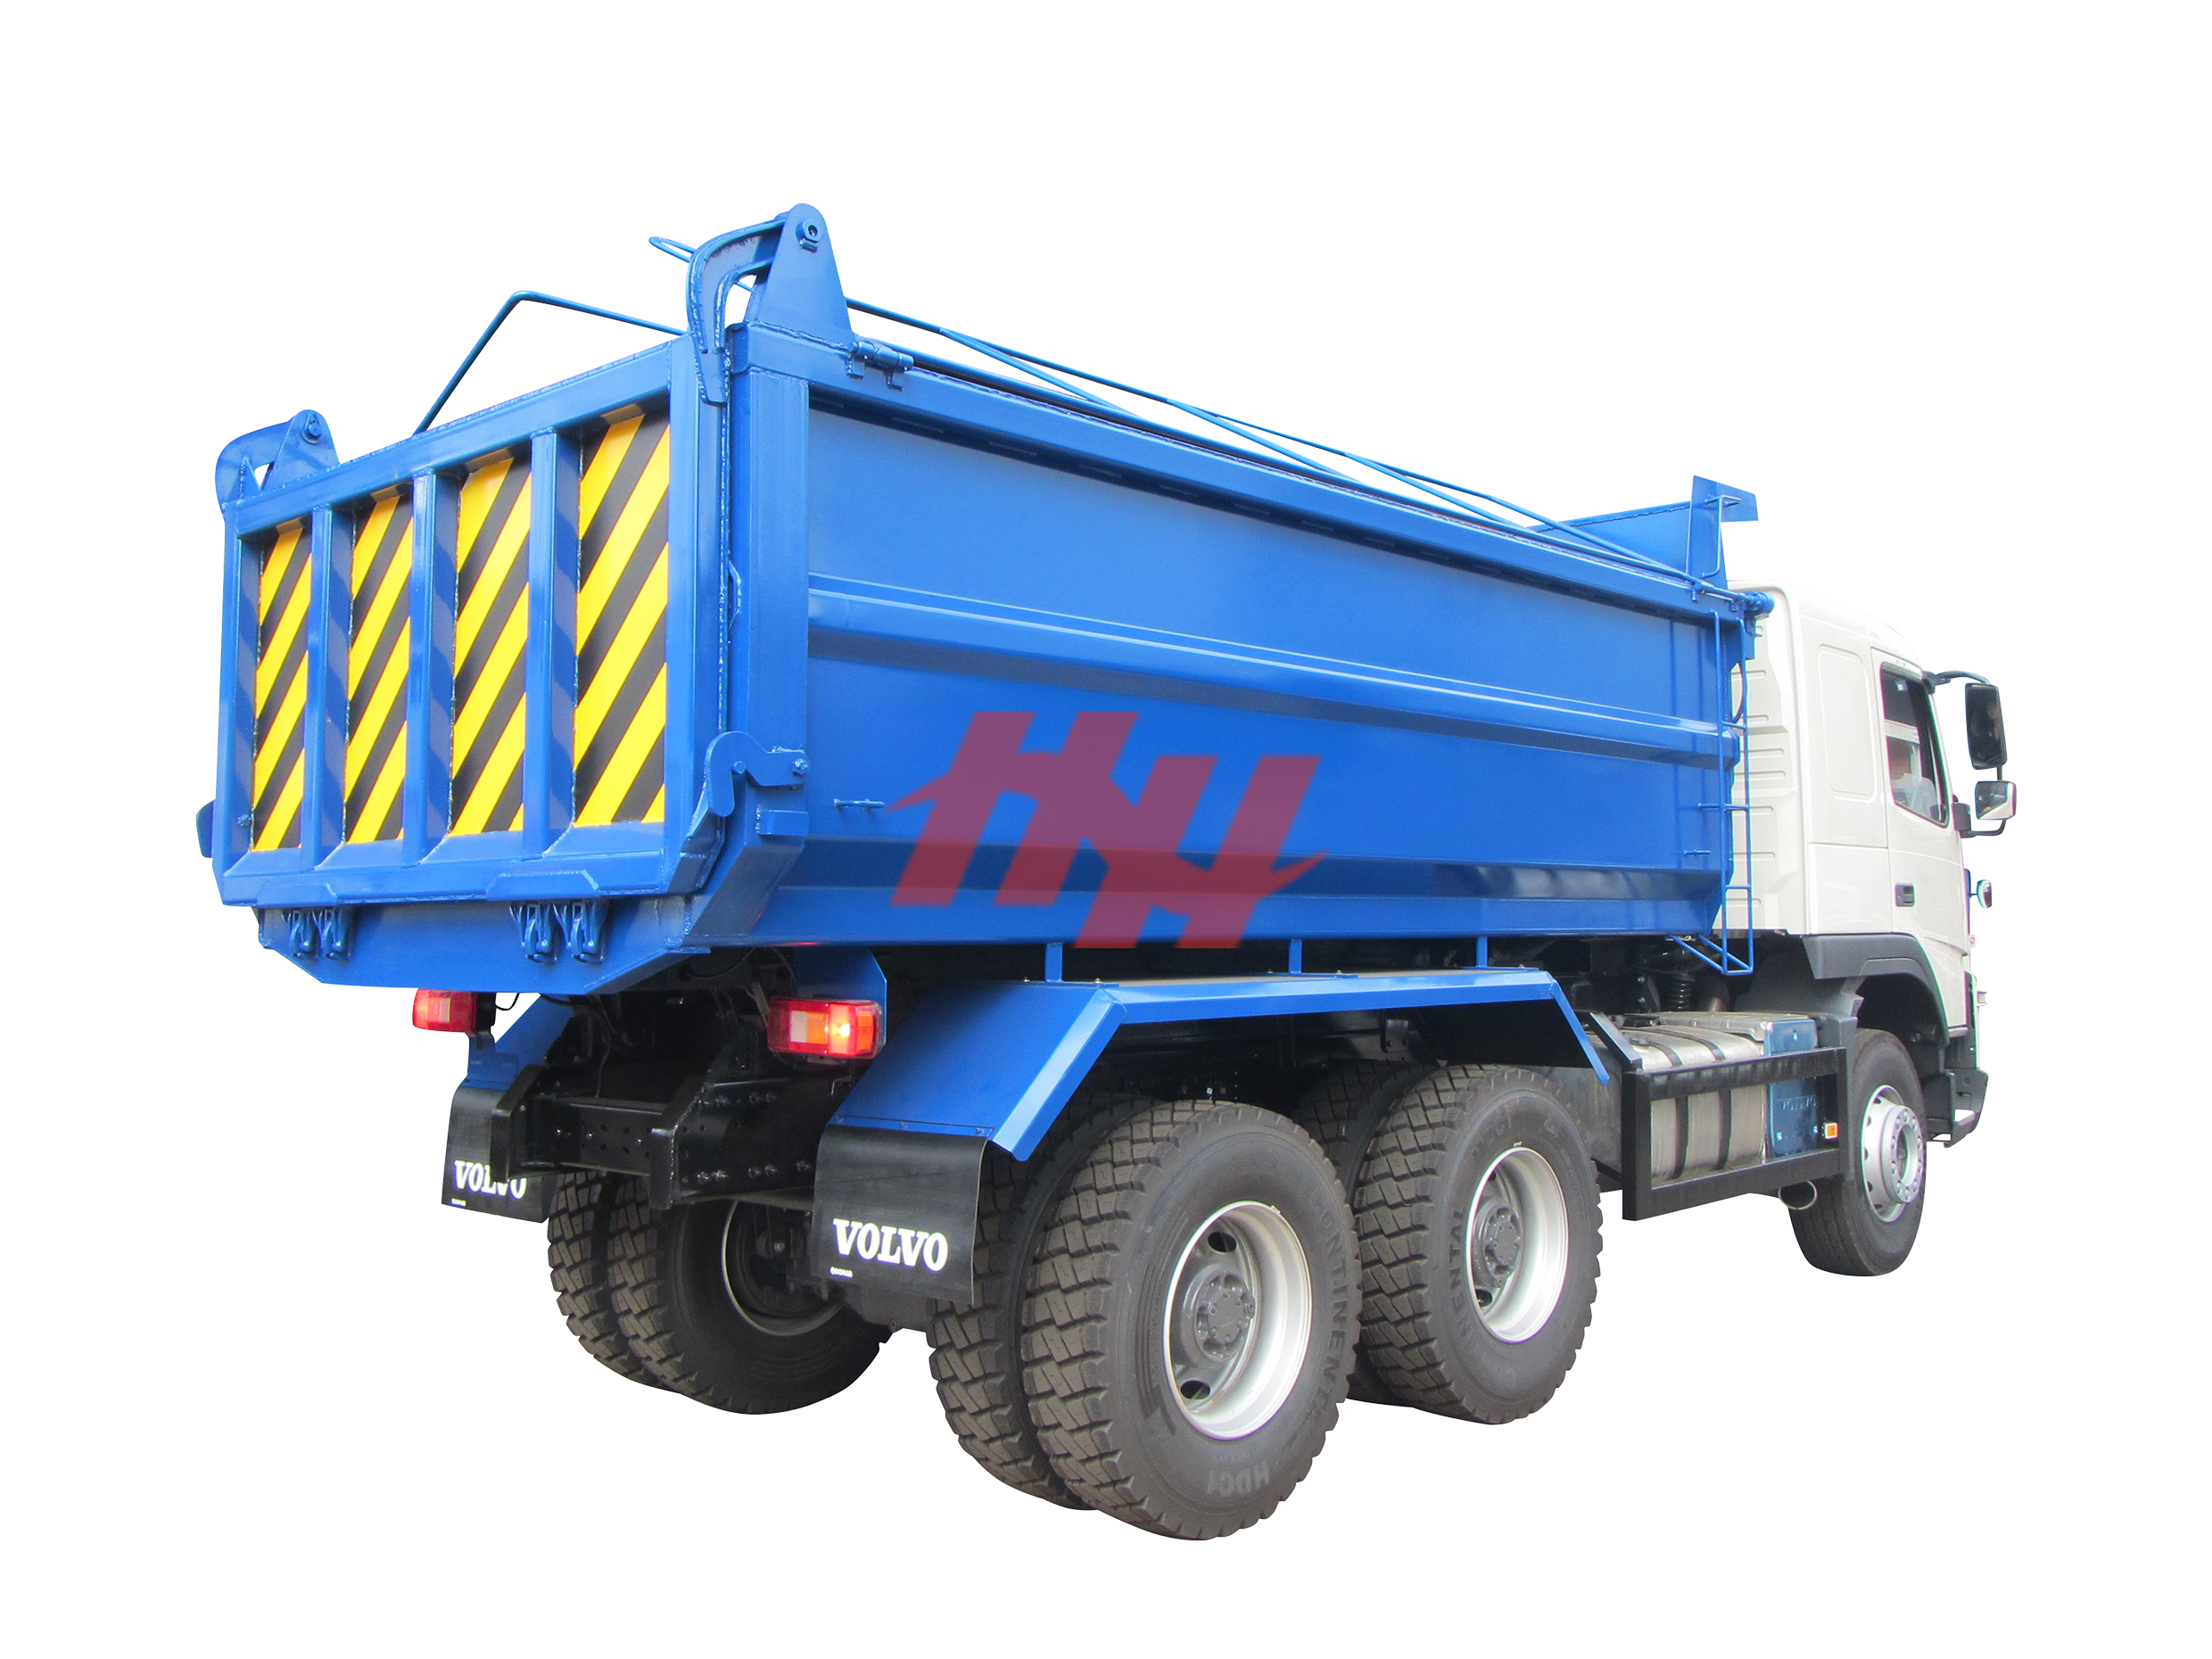 Coroguated hardox tipper body edited